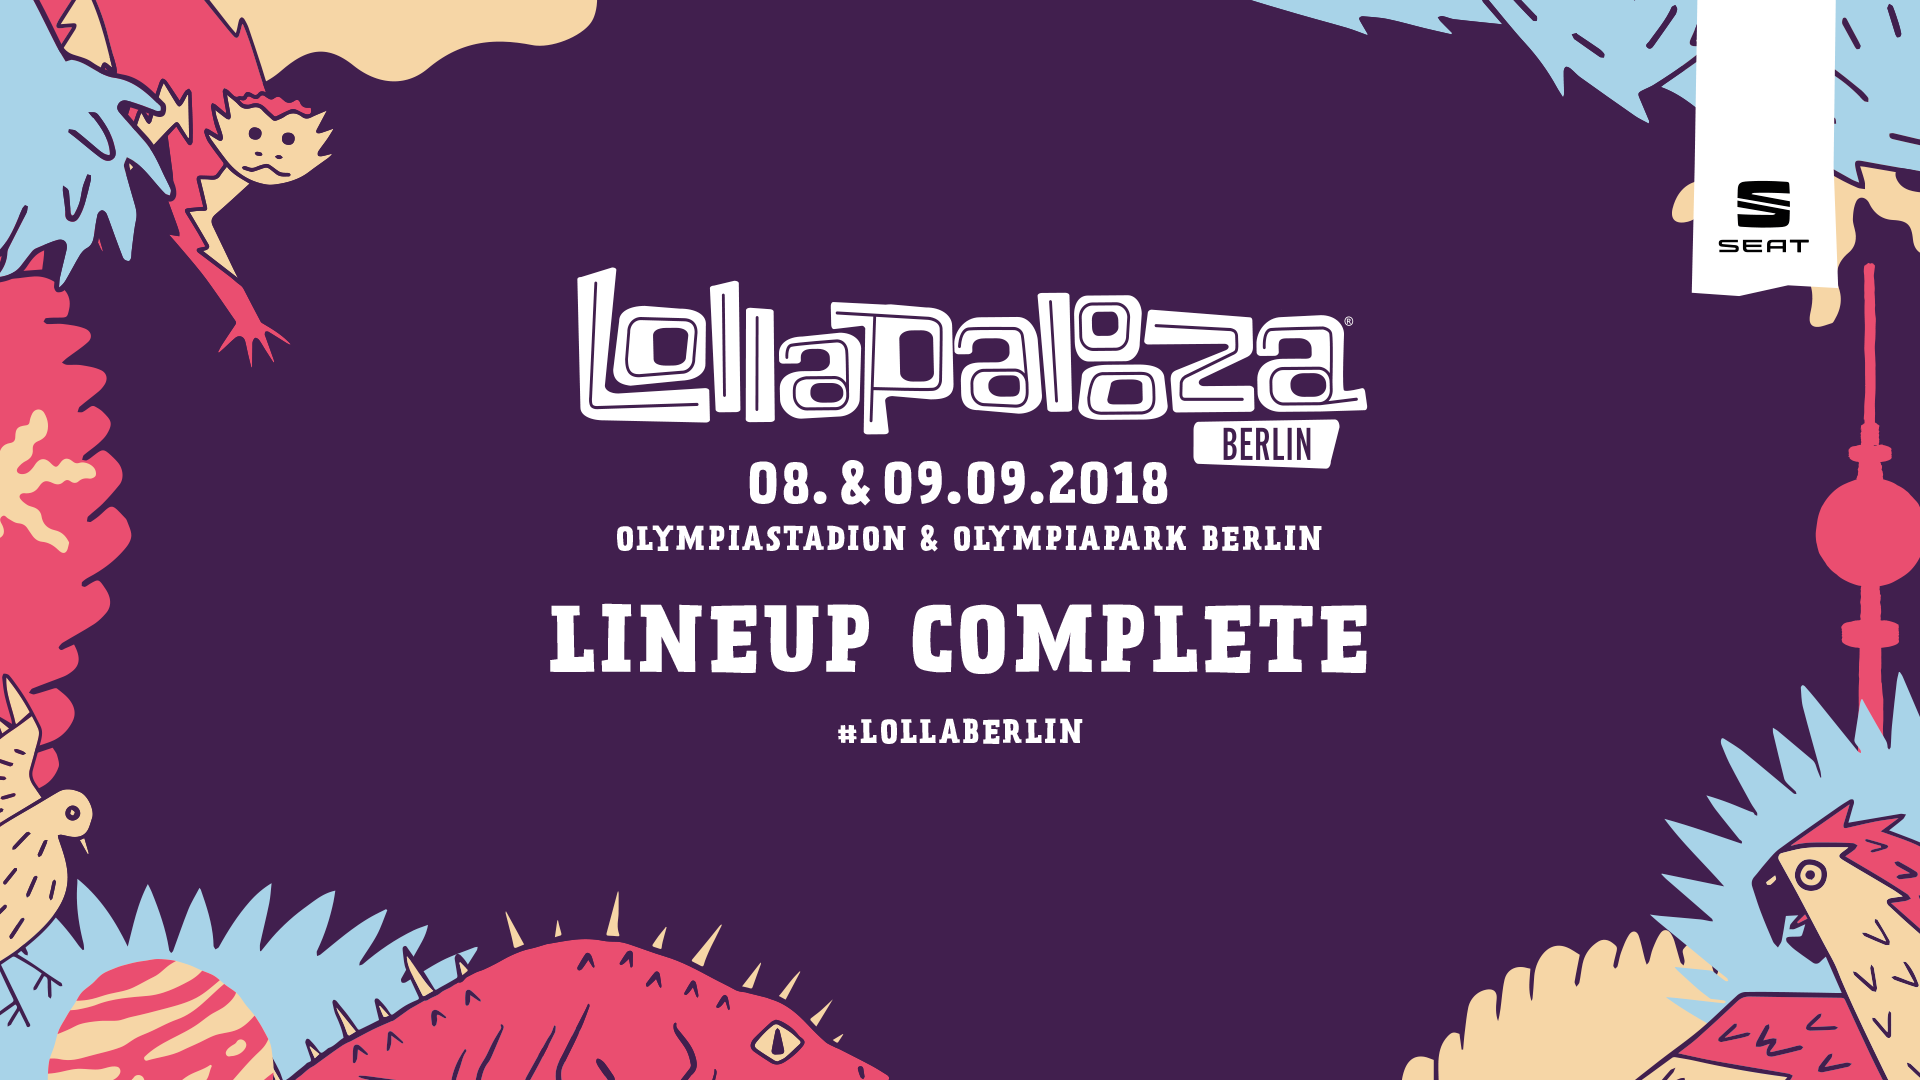 RadioLUISS Speciale Festival: full immersion nel Lollapalooza